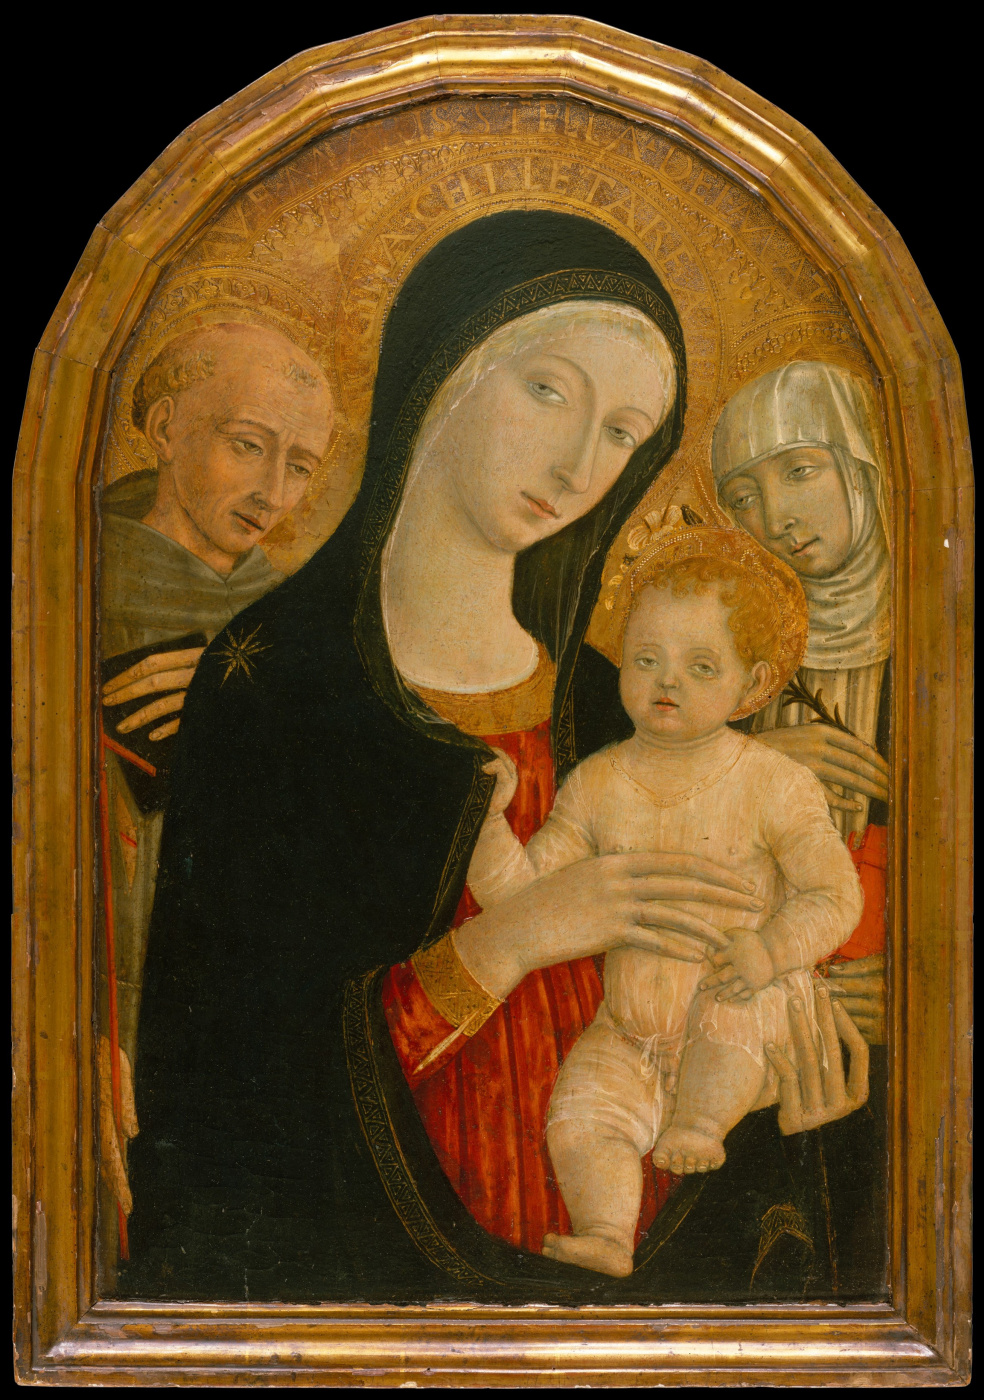 Matteo di Giovanni. Madonna and child with saints Francis and Catherine of Siena